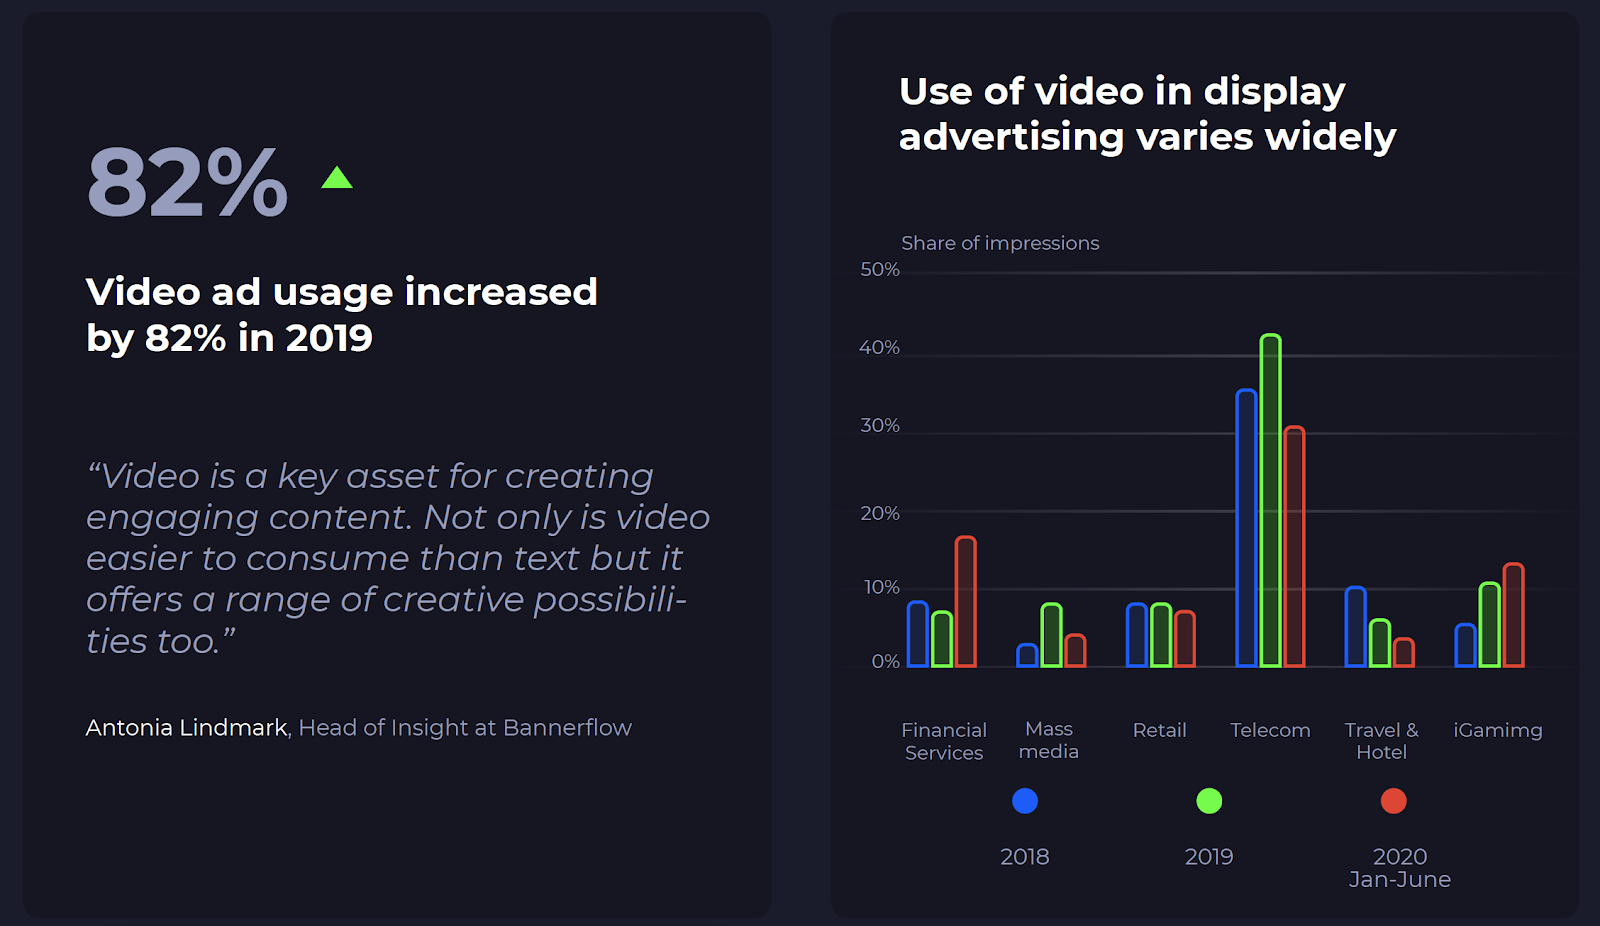 Video ad usage is gaining in popularity too, up by 82% in 2019.